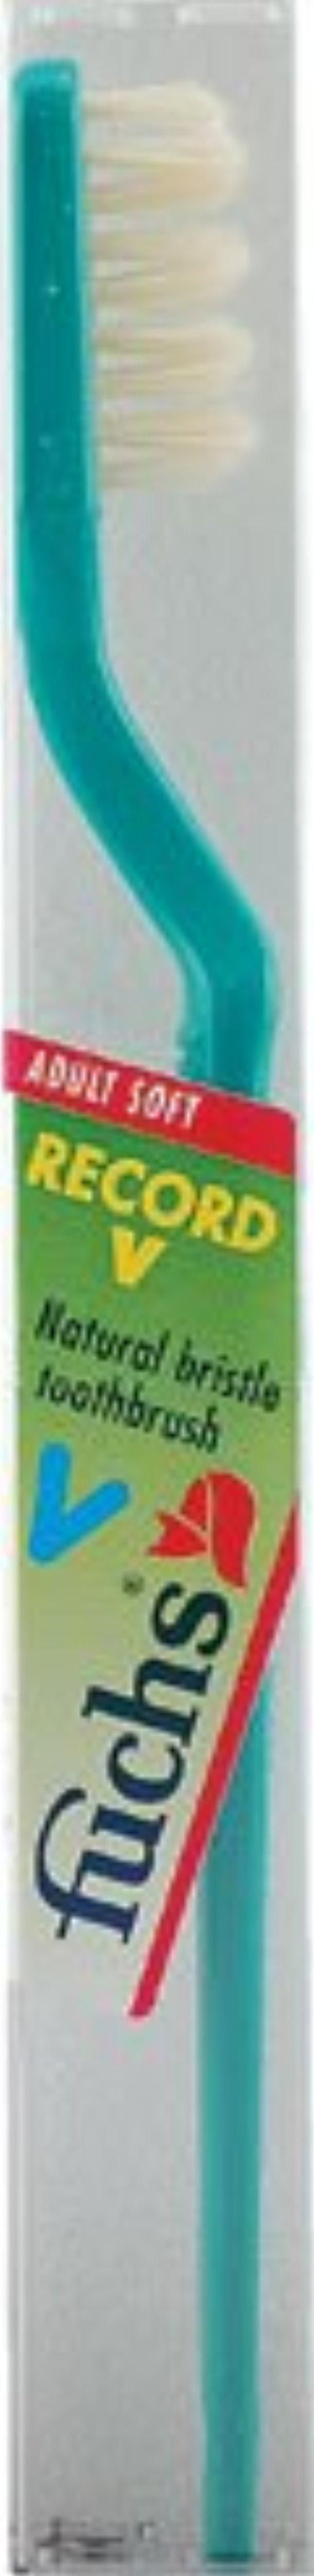 Fuchs Record V Adult Soft Natural Bristle Toothbrush -- 1 Toothbrush - Brought to you by Avarsha.com